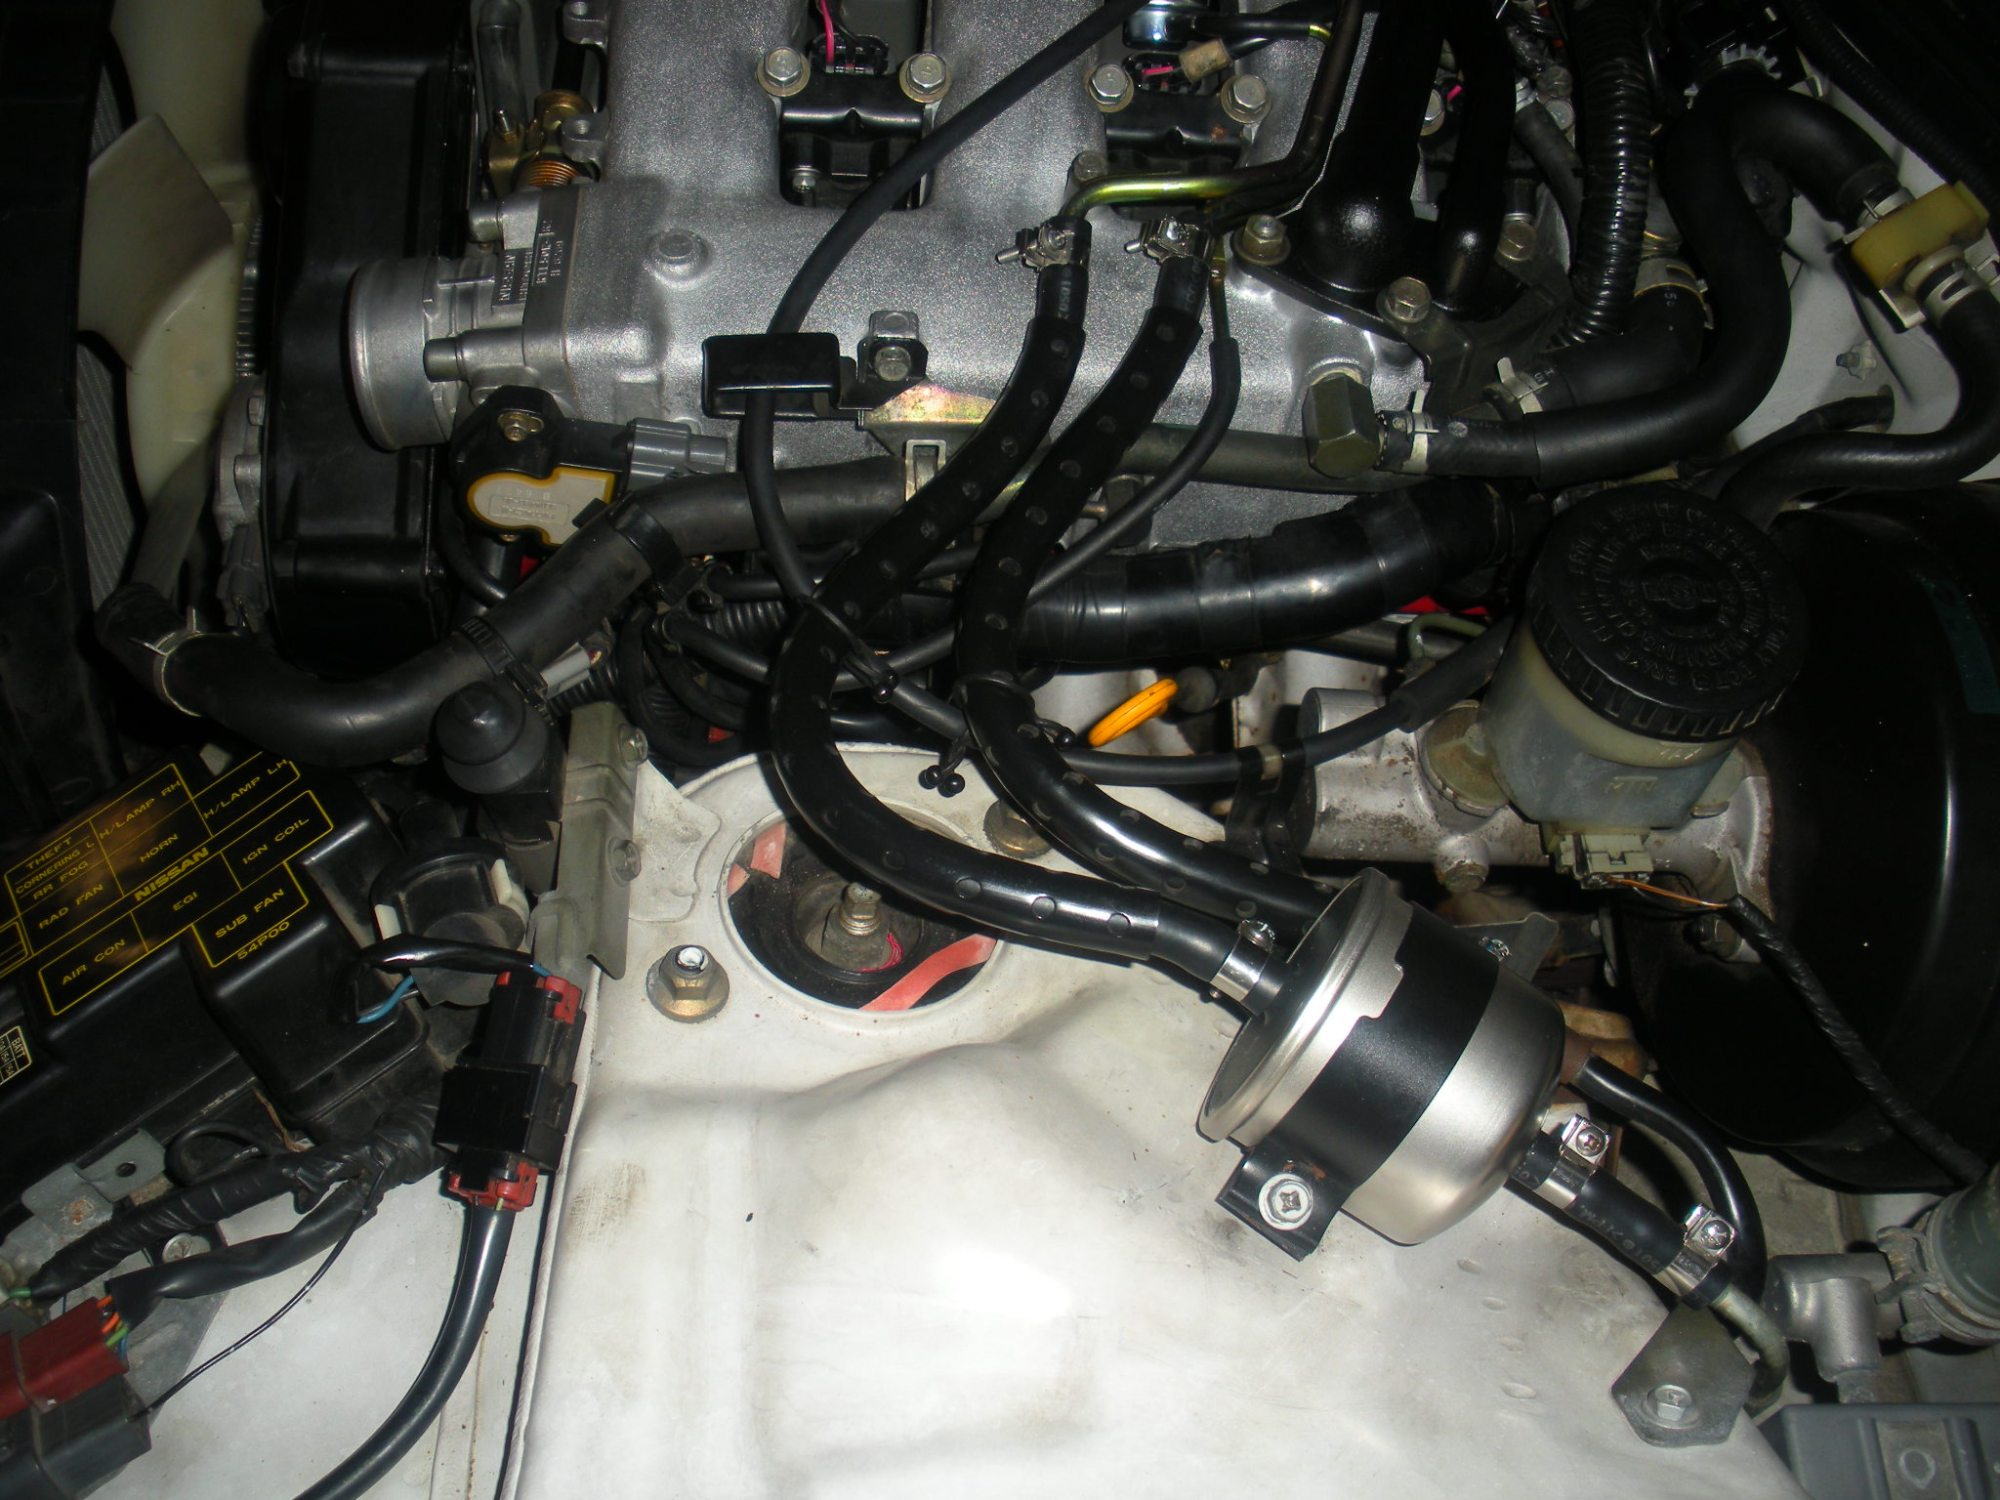 hight resolution of 350z fuel filter wiring library300zx new fuel filter july 2 2011 2048 1536